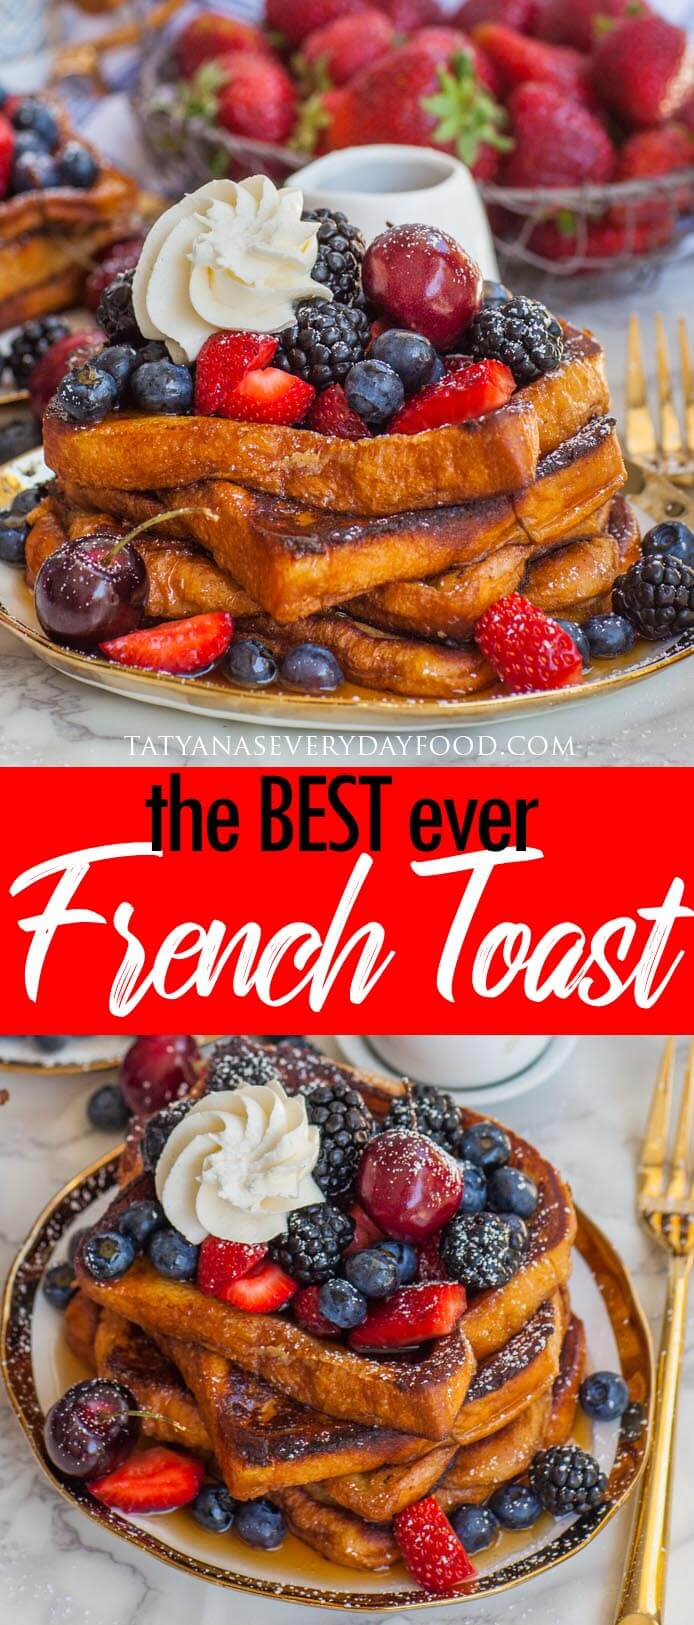 The BEST Ever French Toast video recipe